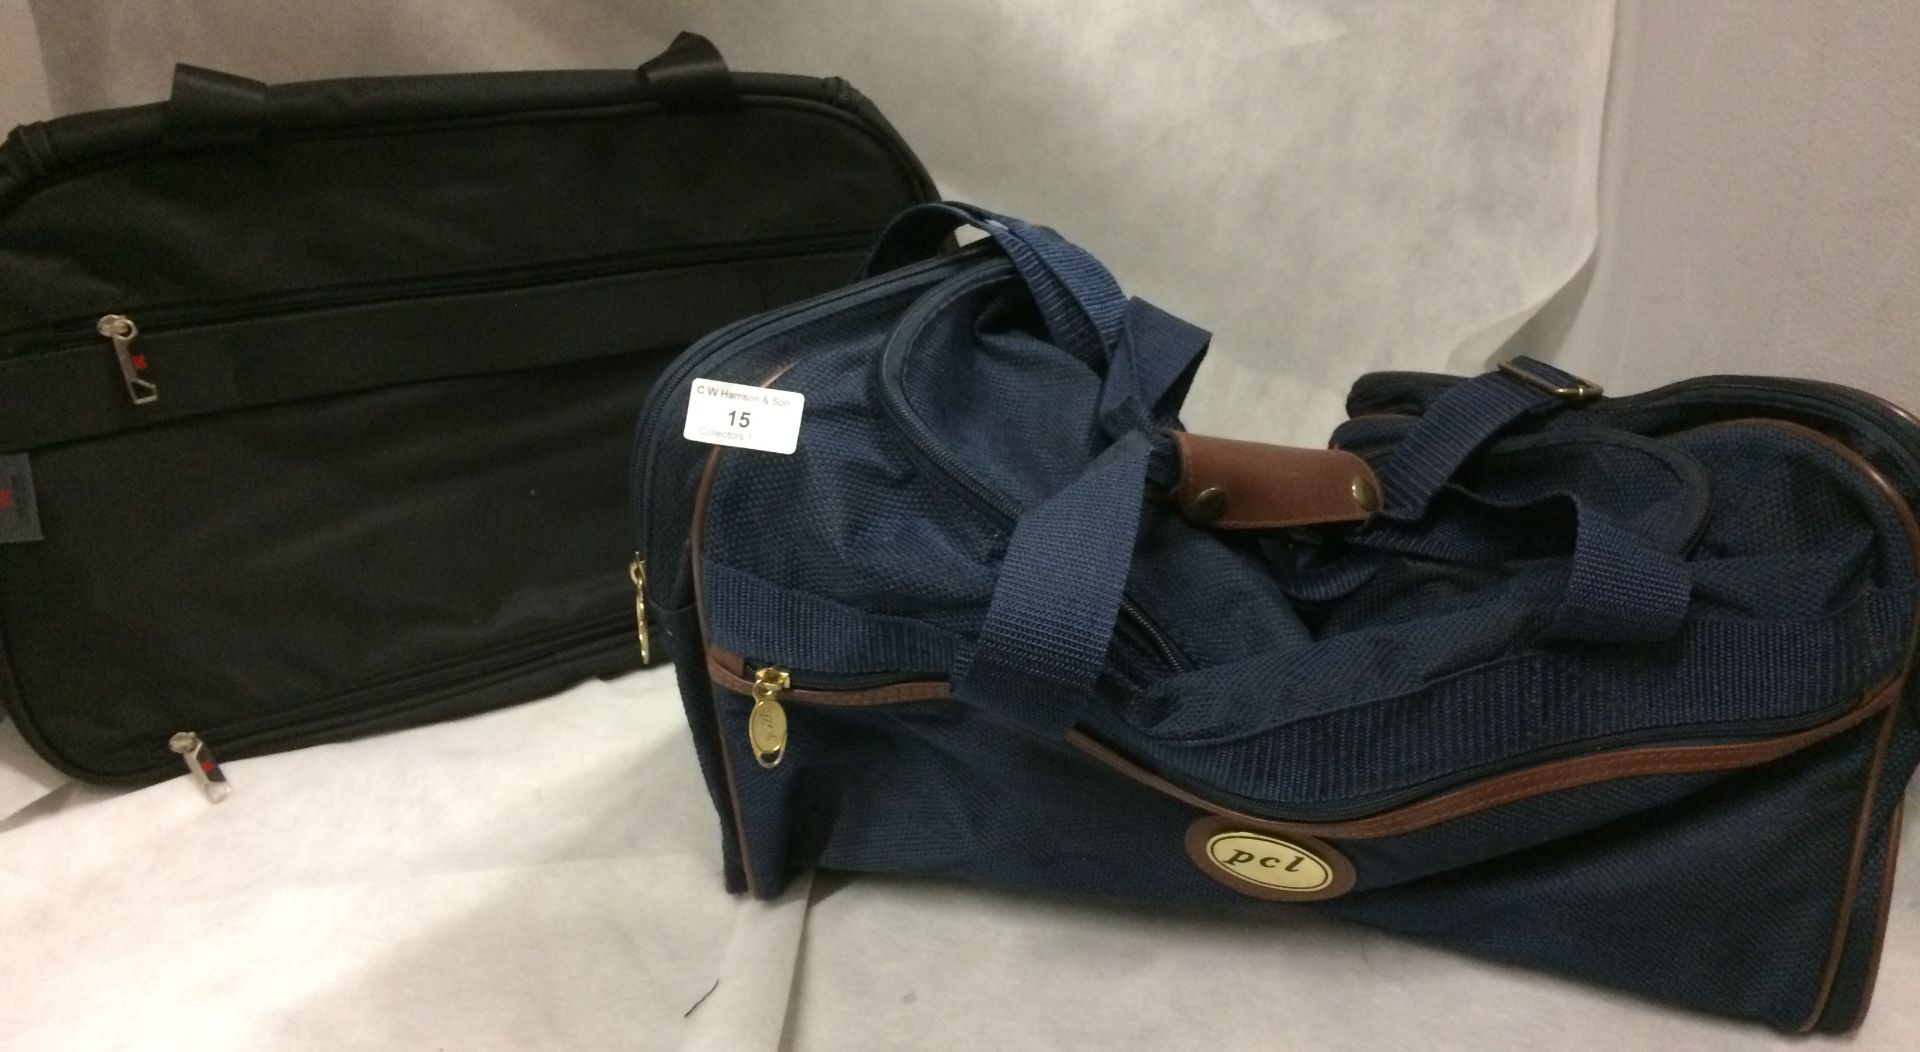 2 x holdalls by PCL and Newlock in black and blue